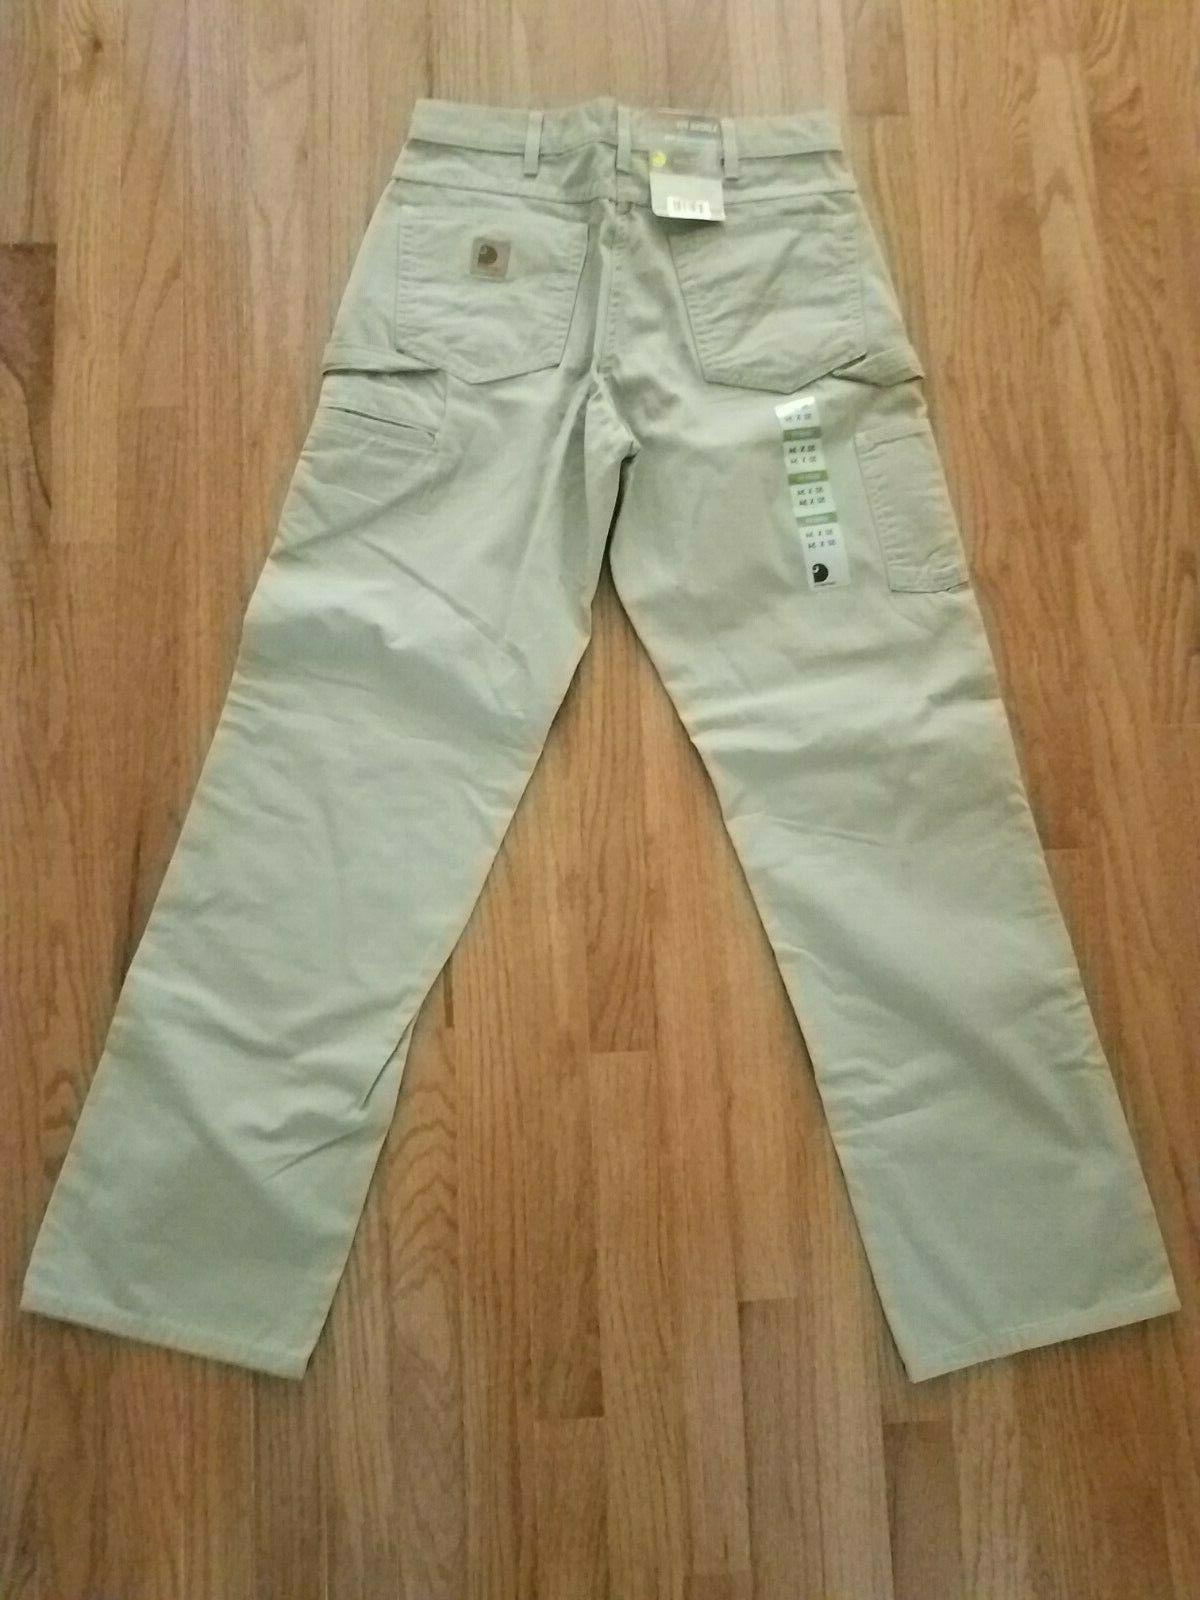 CARHARTT Mens Carpenter Pants 32x34 Fit GKH BRAND NEW